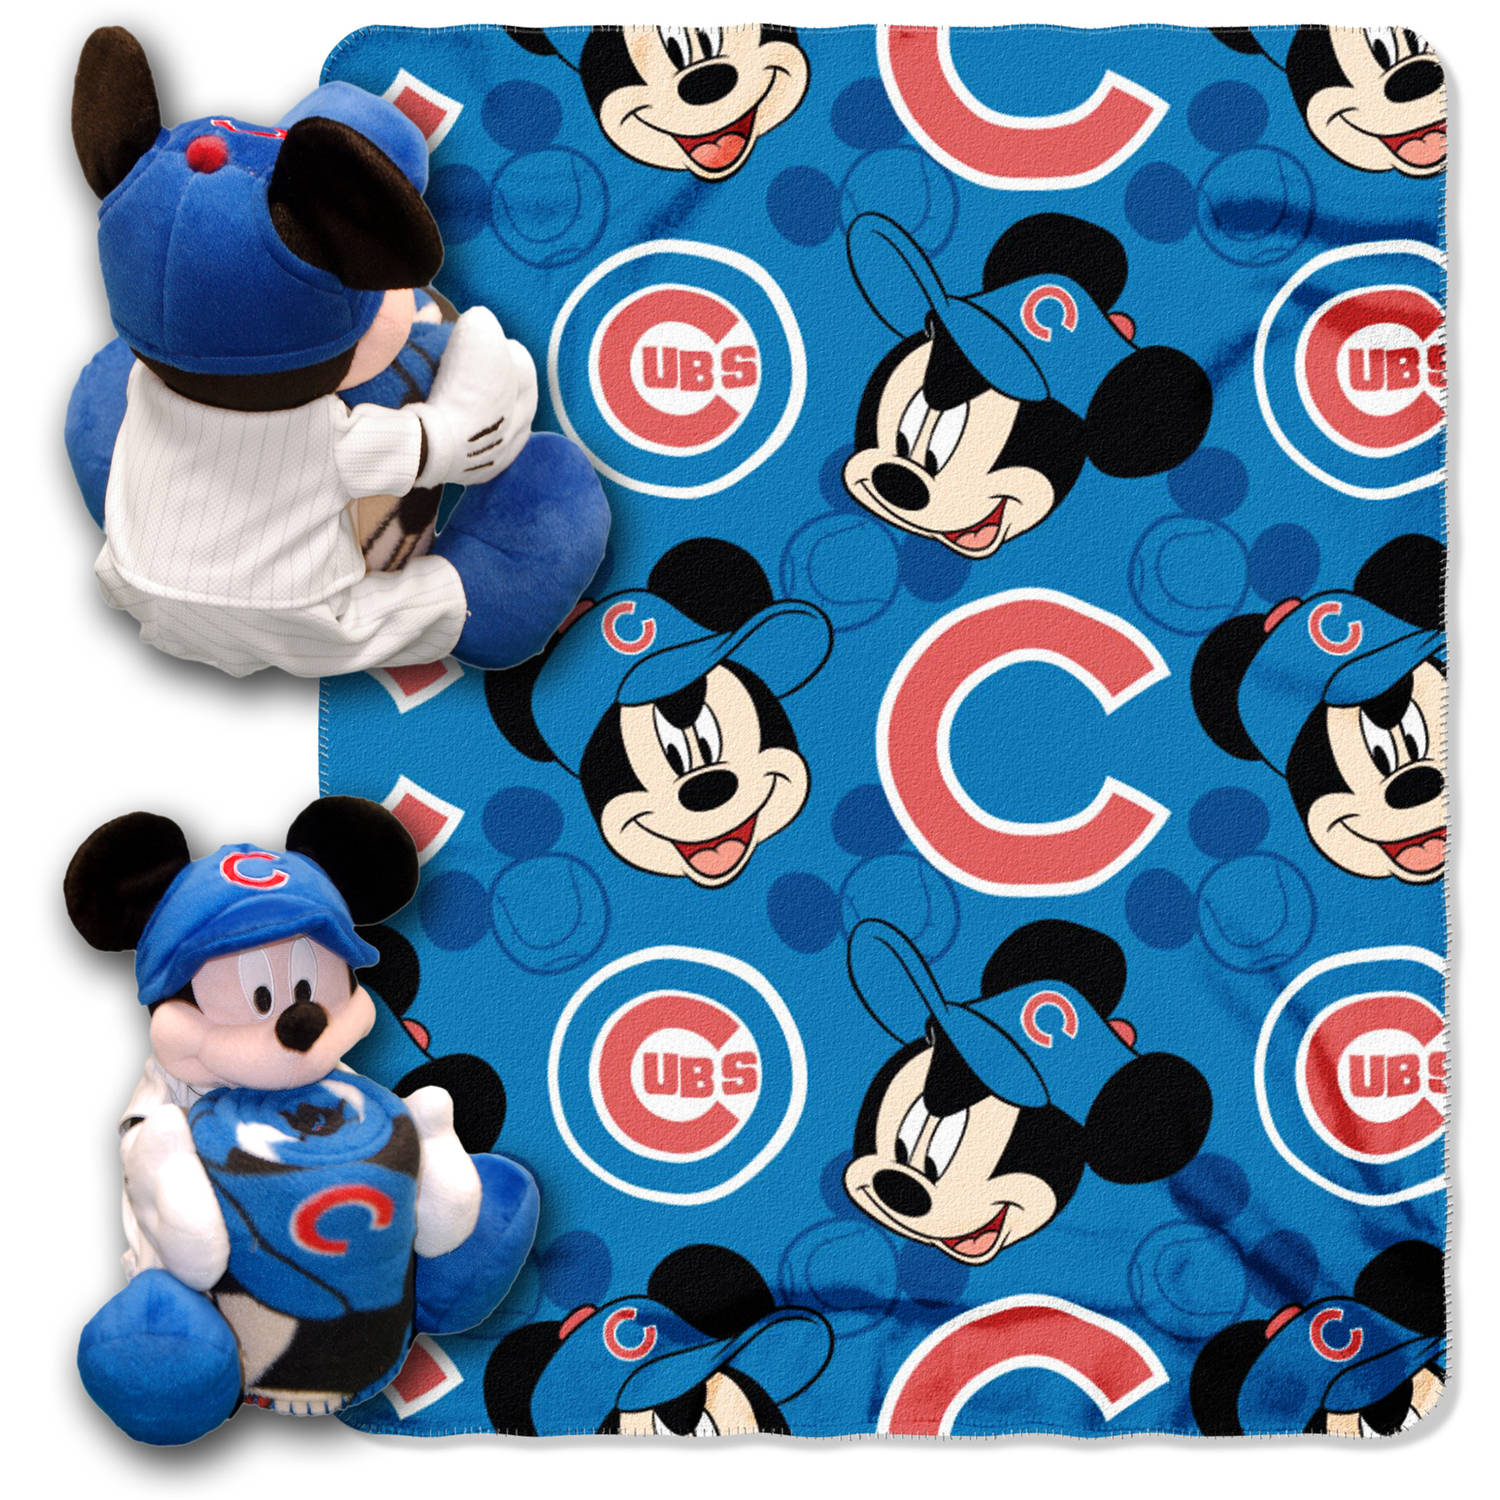 "Disney MLB Chicago Cubs Pitch Crazy Hugger Pillow and 40"" x 50"" Throw Set"